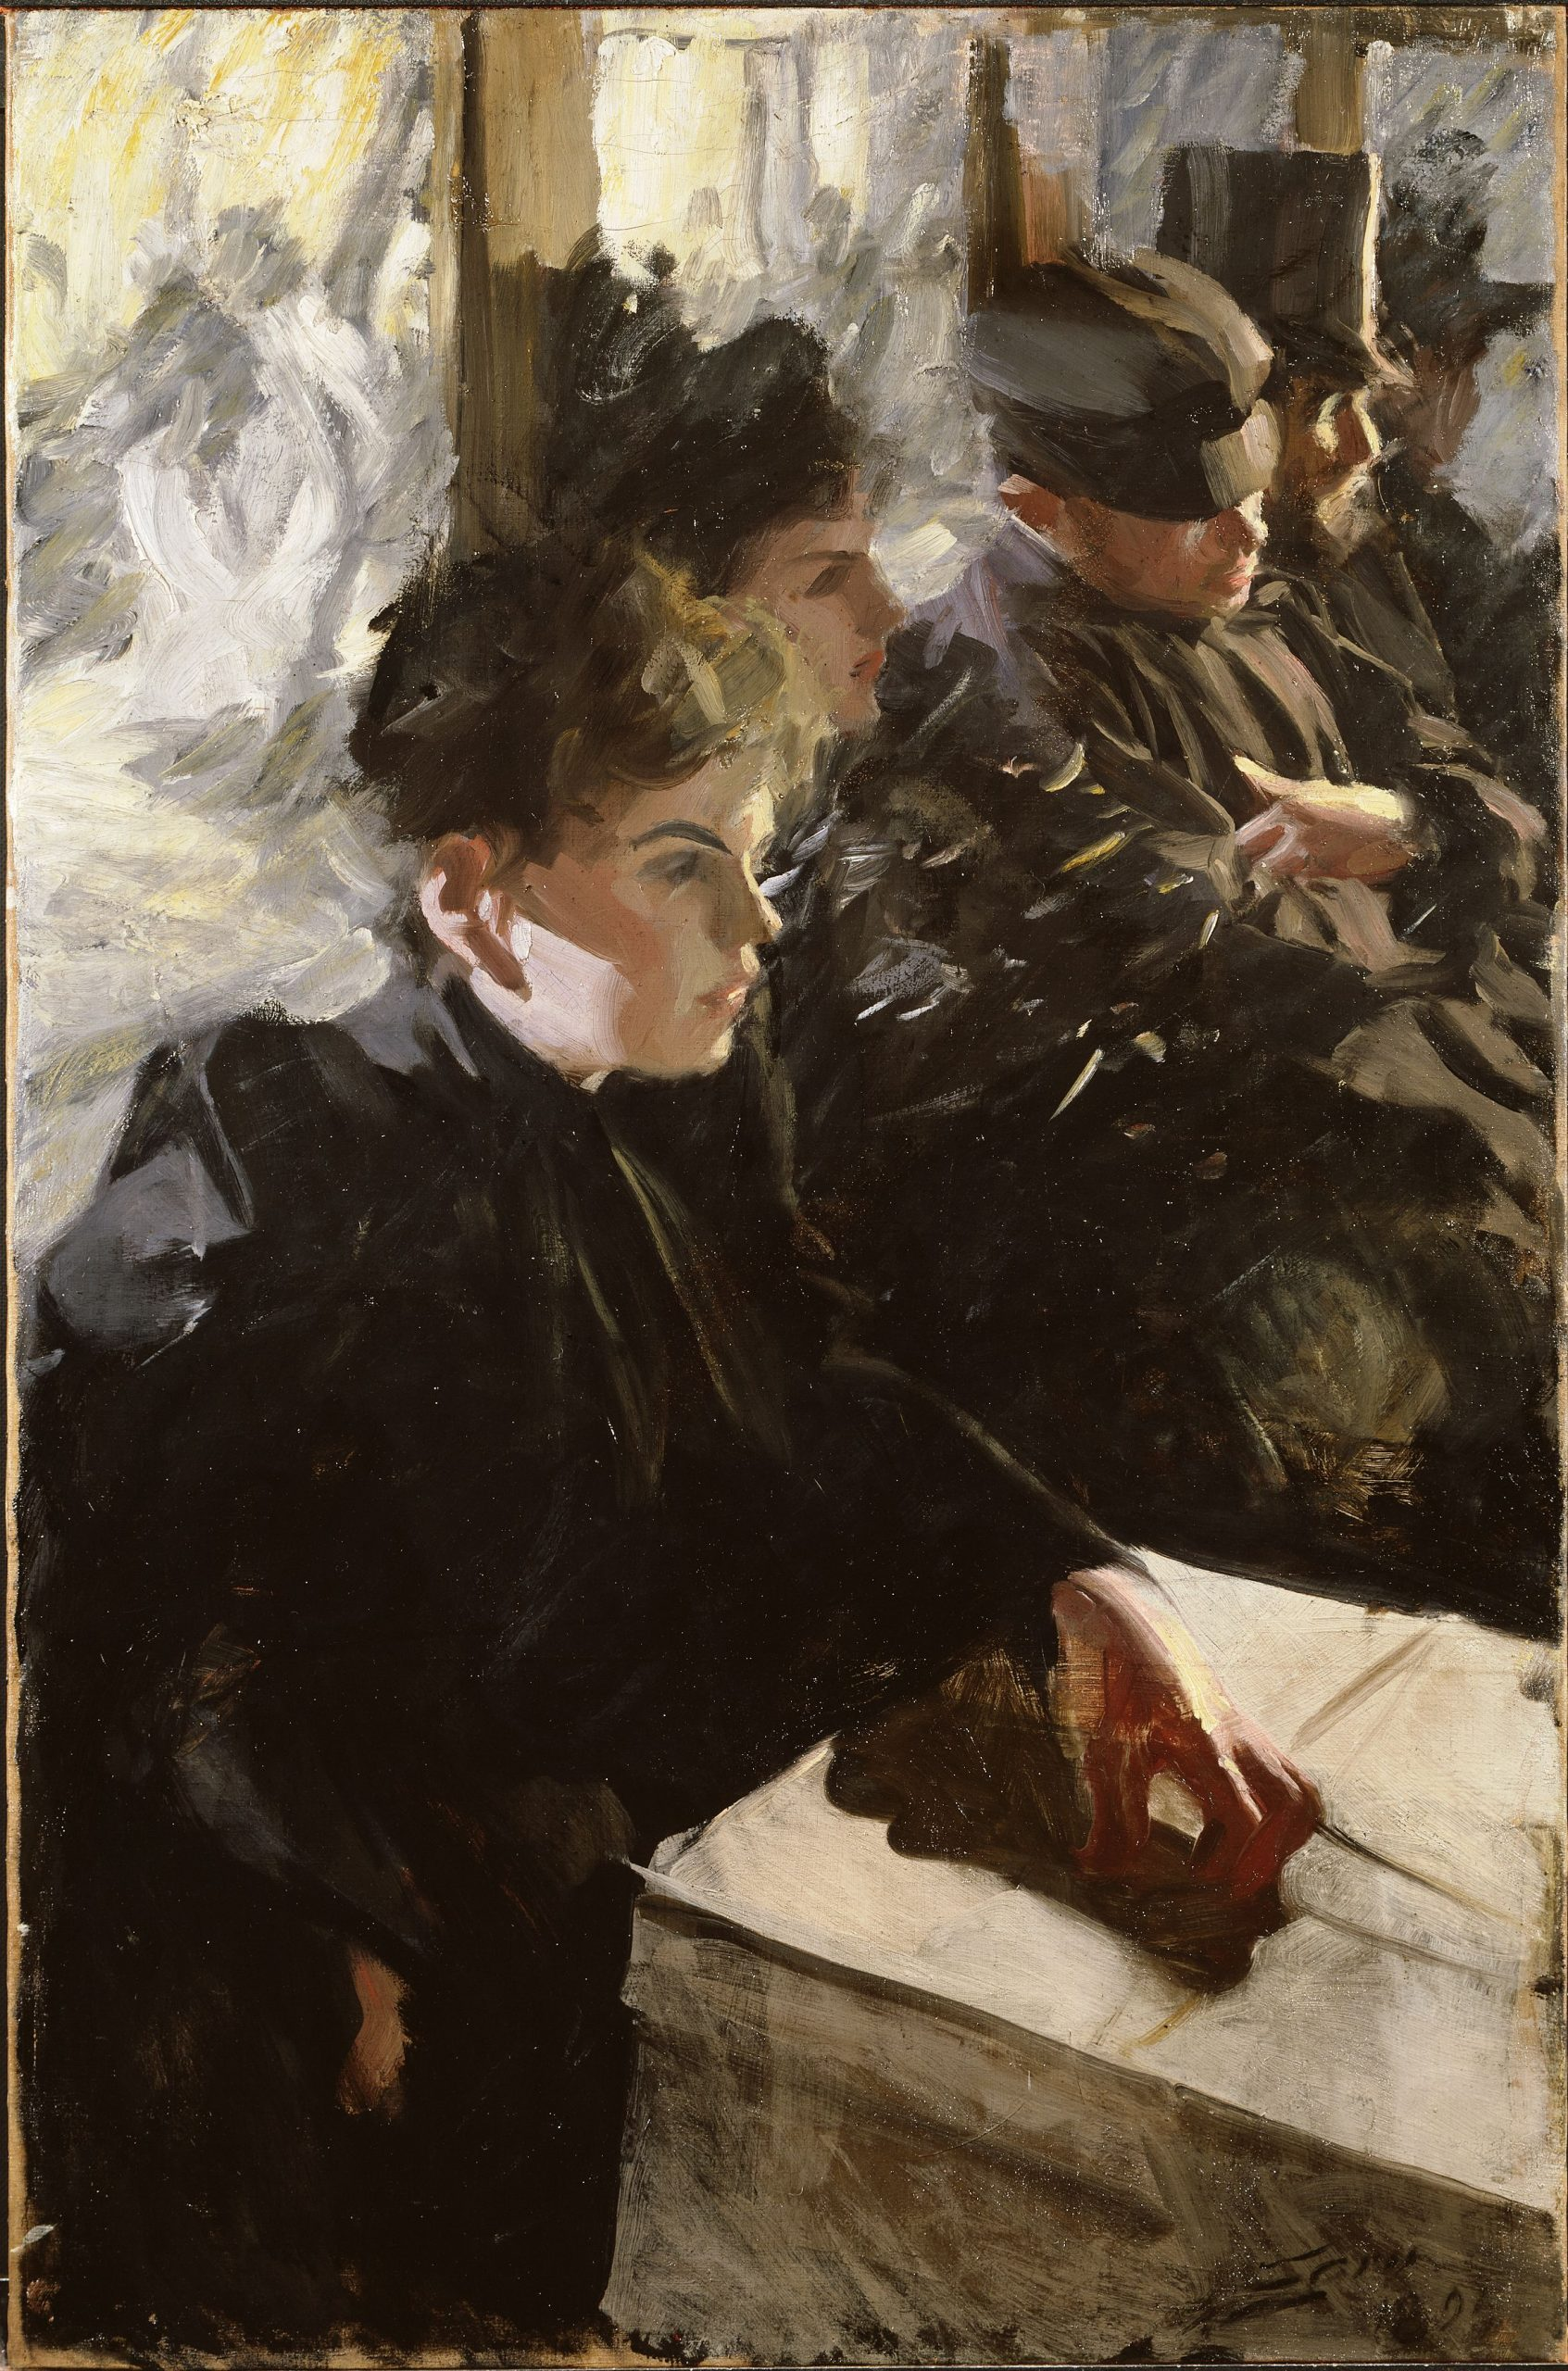 The vague facial features don't take away from this impressive portrait painting, Omnibus, by Anders Zorn.